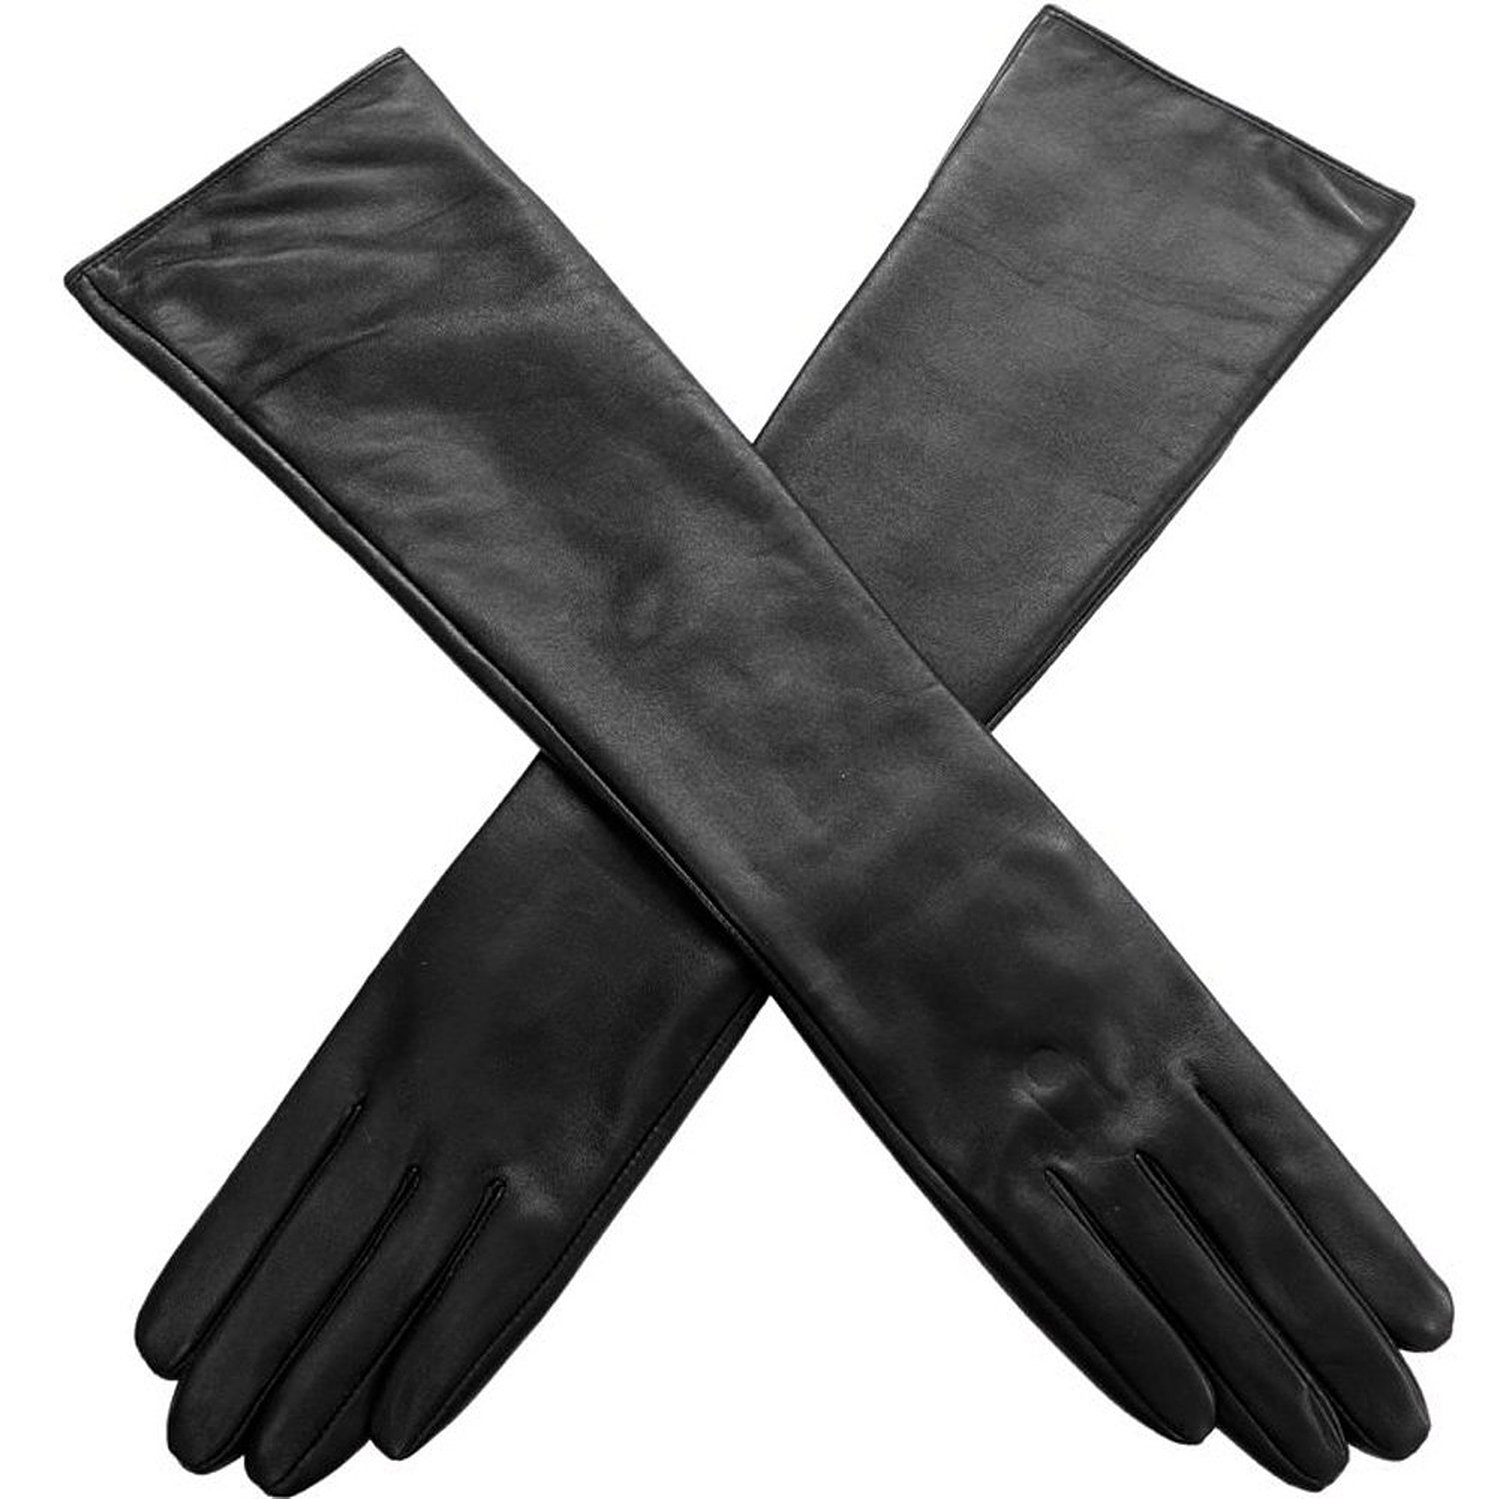 Amazon.com: abody women gloves pu leather touch screen elbow length sexy long evening party gloves: clothing